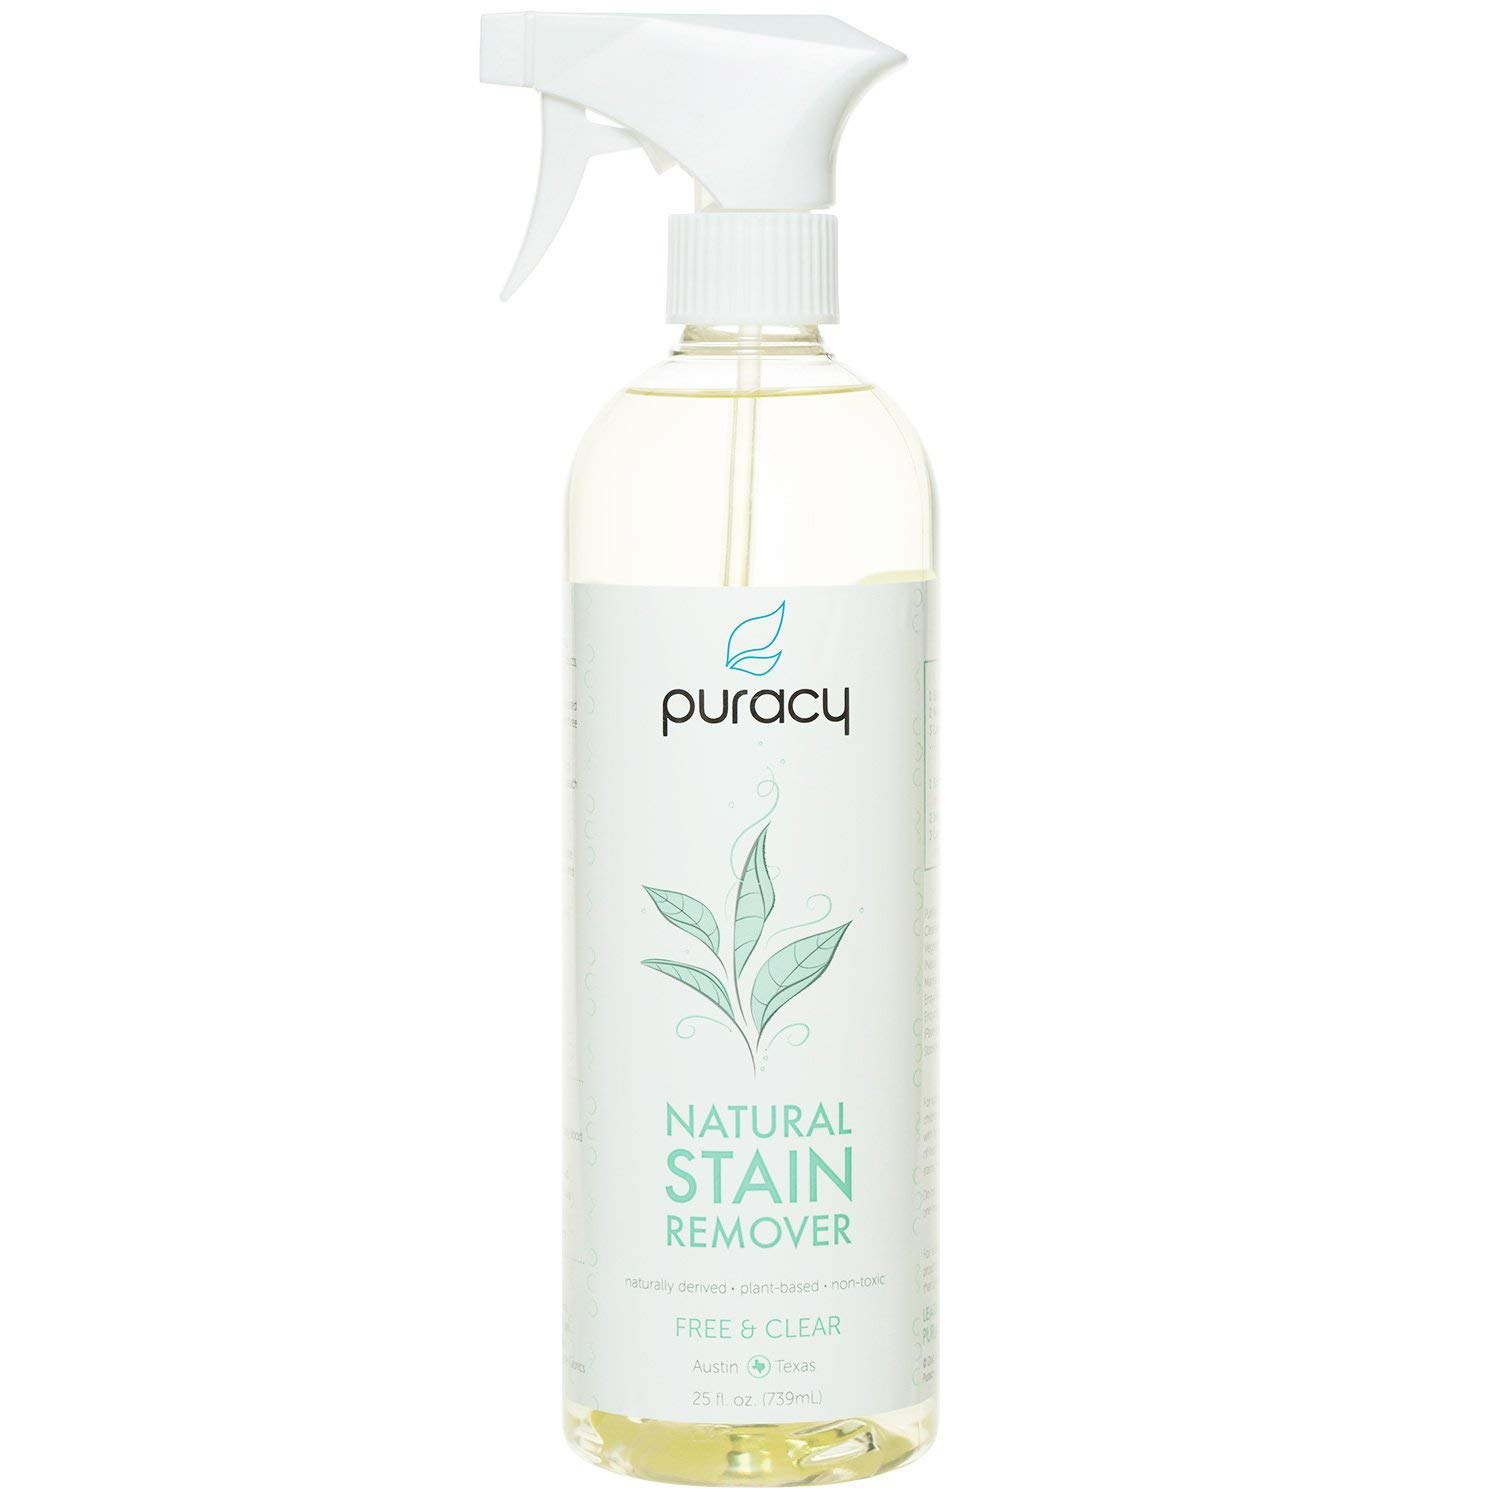 A Natural Stain Remover